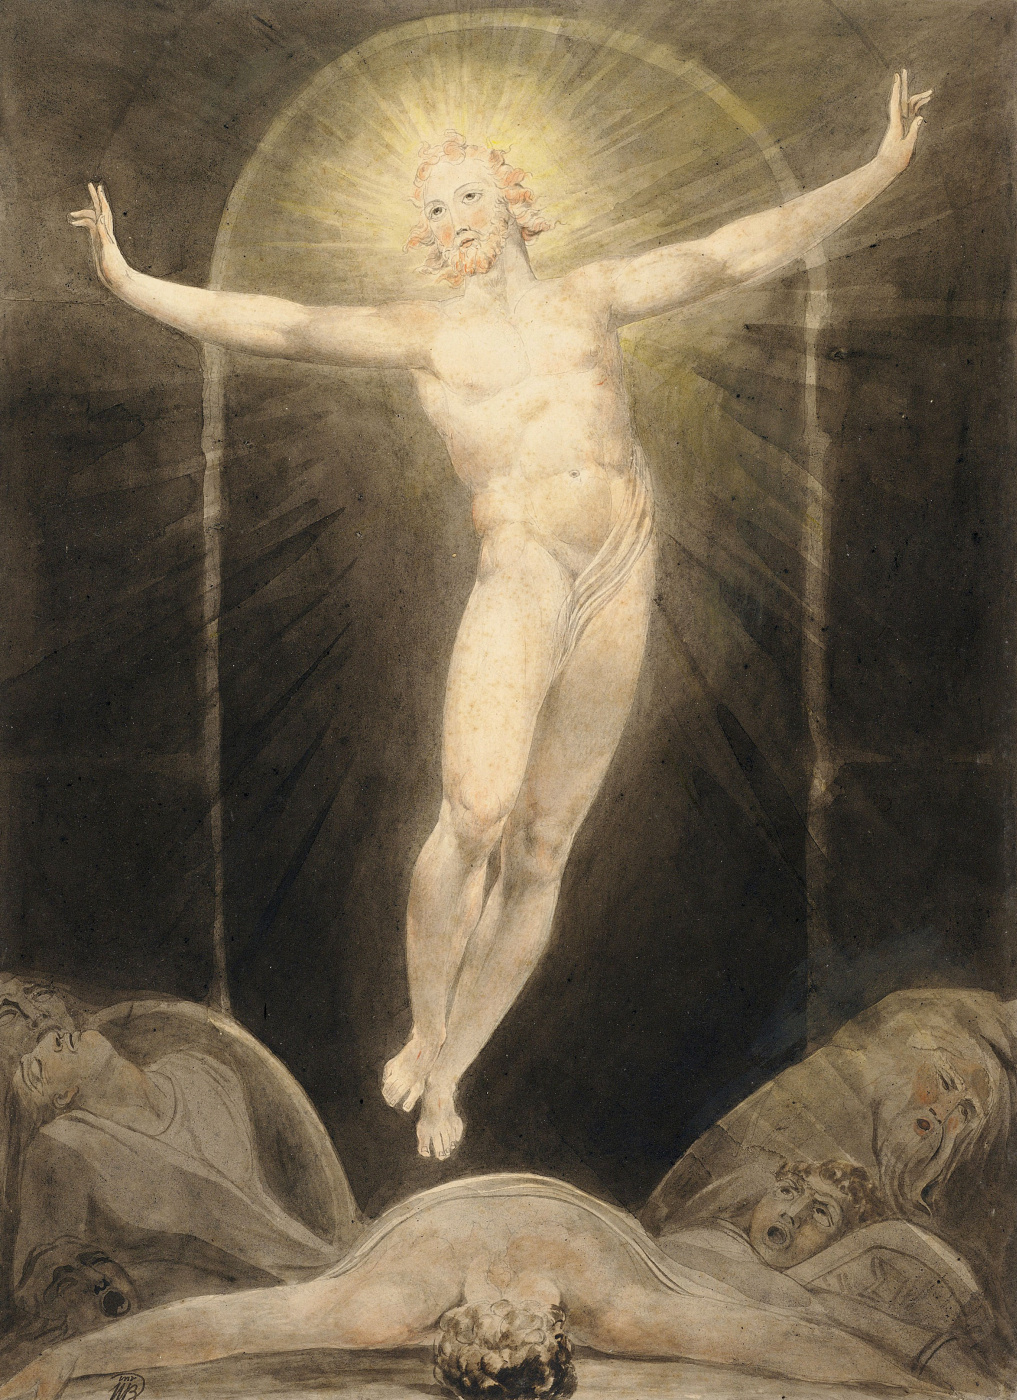 William Blake. Illustrations of the Bible. Sunday